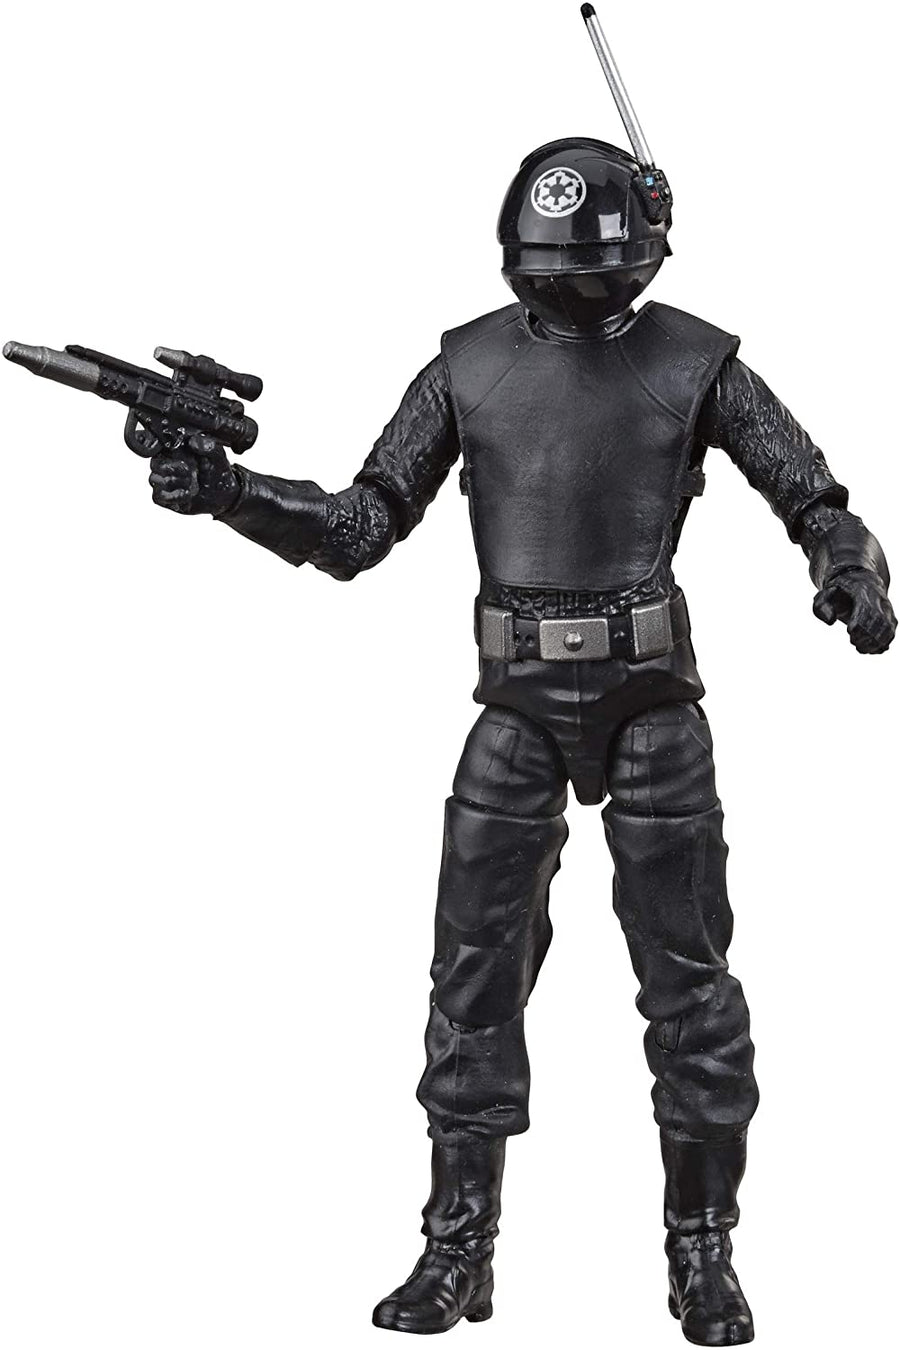 Star Wars The Vintage Collection Death Star Gunner Action Figure Pre-Order